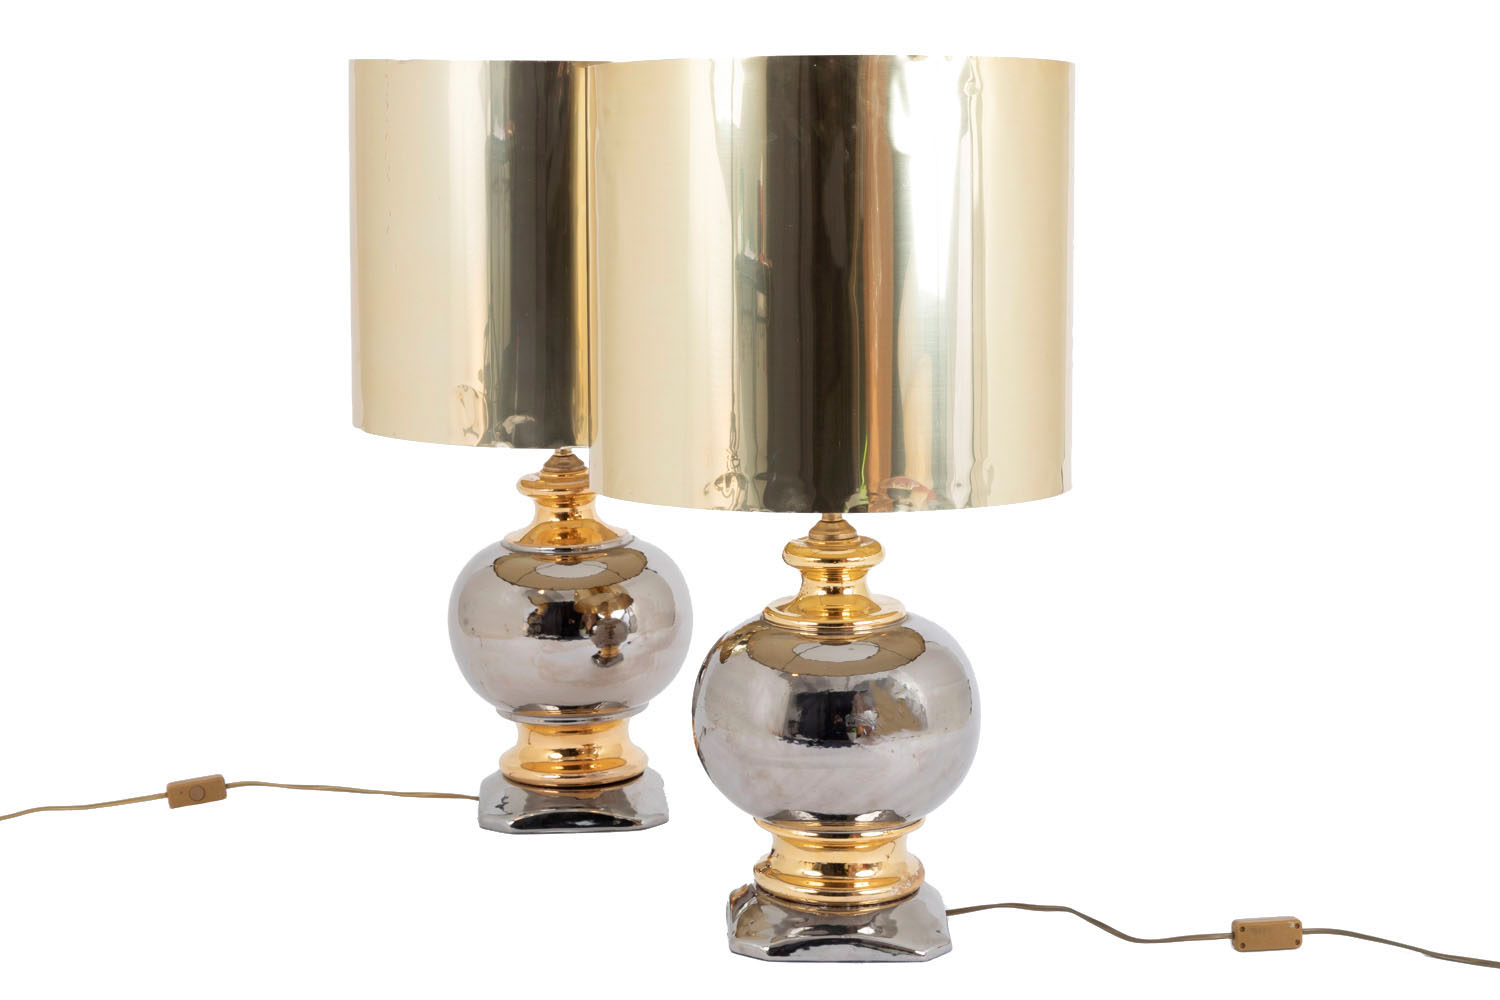 Luster Lampe Pair Of Gilt And Silver Luster Glazed Ceramic Ball Lamps Circa 1960